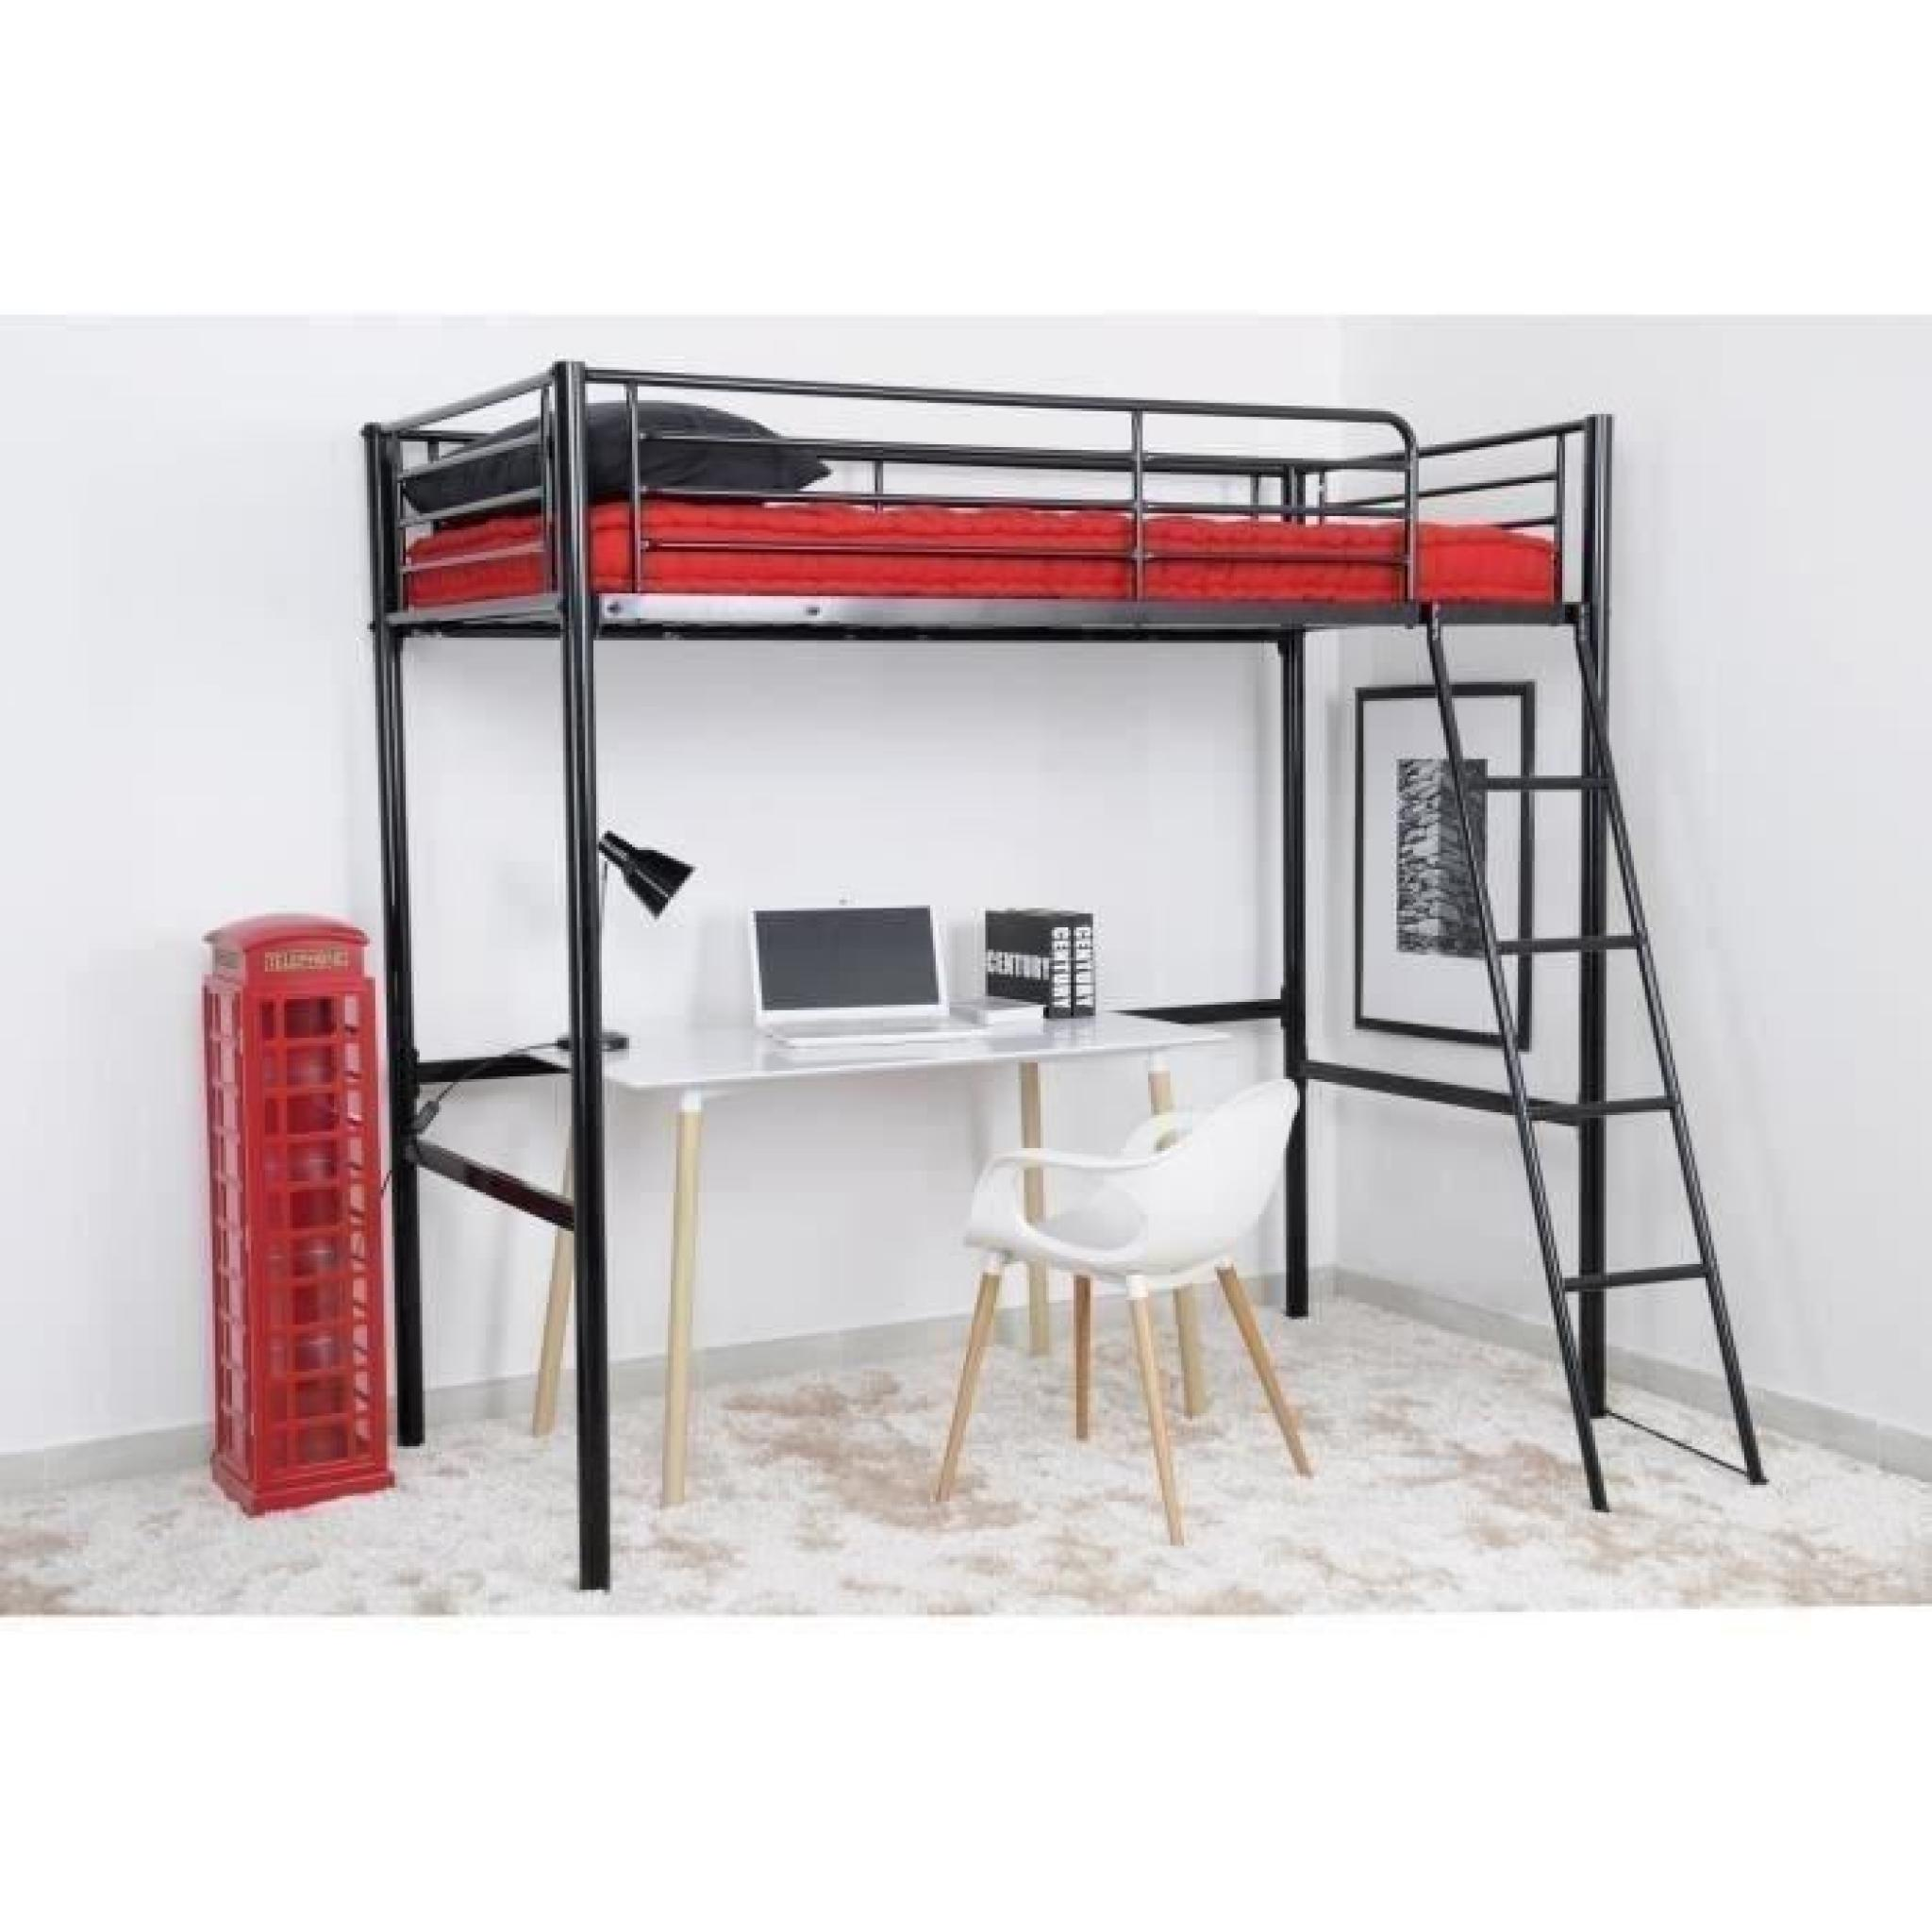 finlandek lit mezzanine adulte 90x190 cm m tal noir leijona achat vente lit superpose pas cher. Black Bedroom Furniture Sets. Home Design Ideas